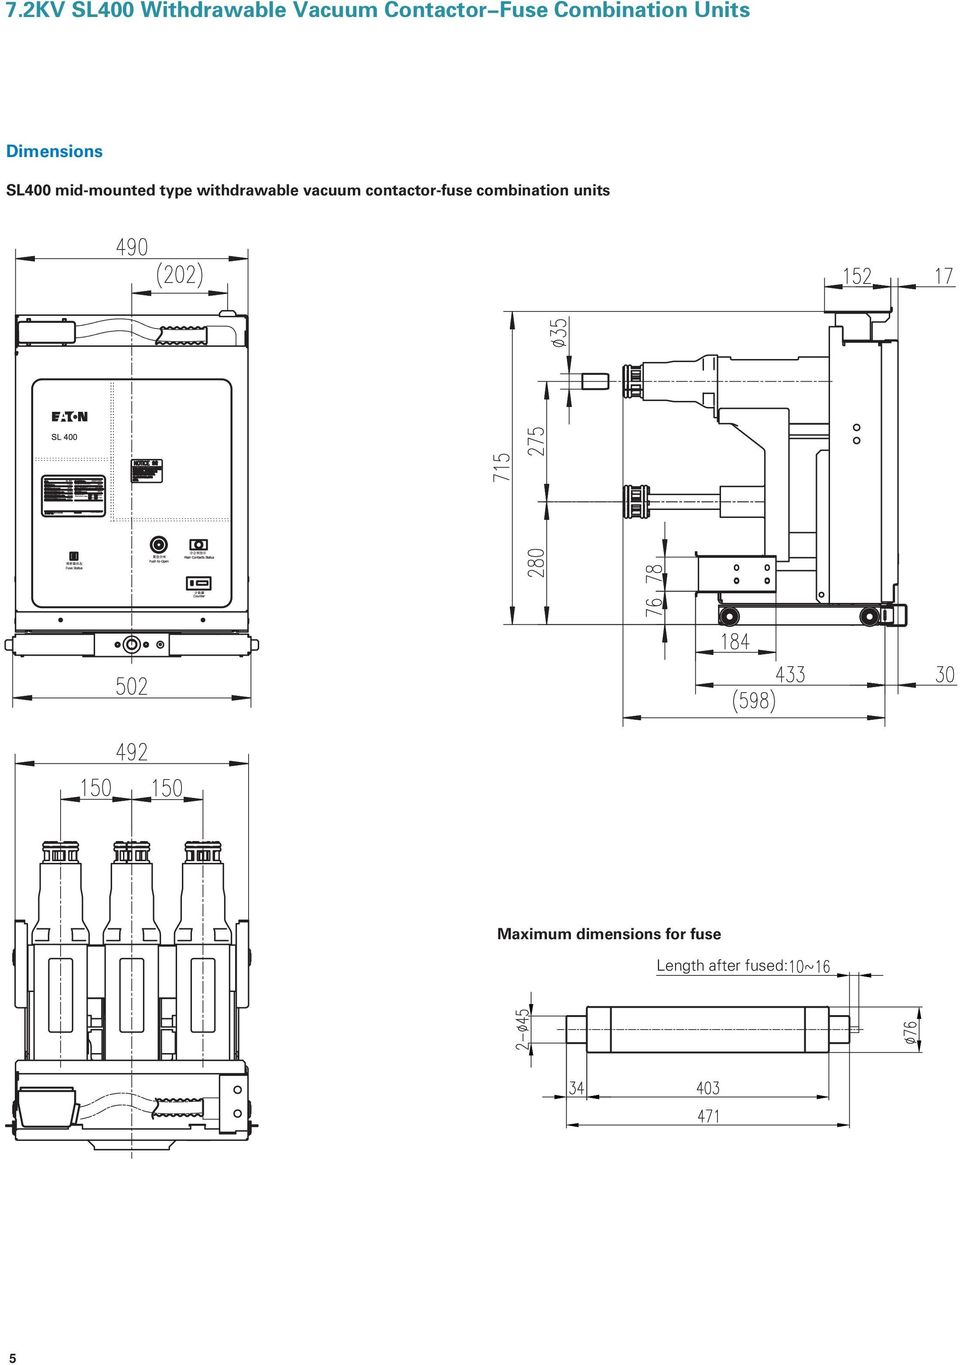 alternating relay wiring diagram with 13594969 7 2kv Sl400 Withdrawable Vacuum Contactor Fuse  Bination Units on Schematics h moreover Chapter 8 Mag ic Motor Starter also ConverterInfo together with Electric Welding Equipment Part 2 in addition 1966 Mustang Emergency Flasher Wiring Diagram.